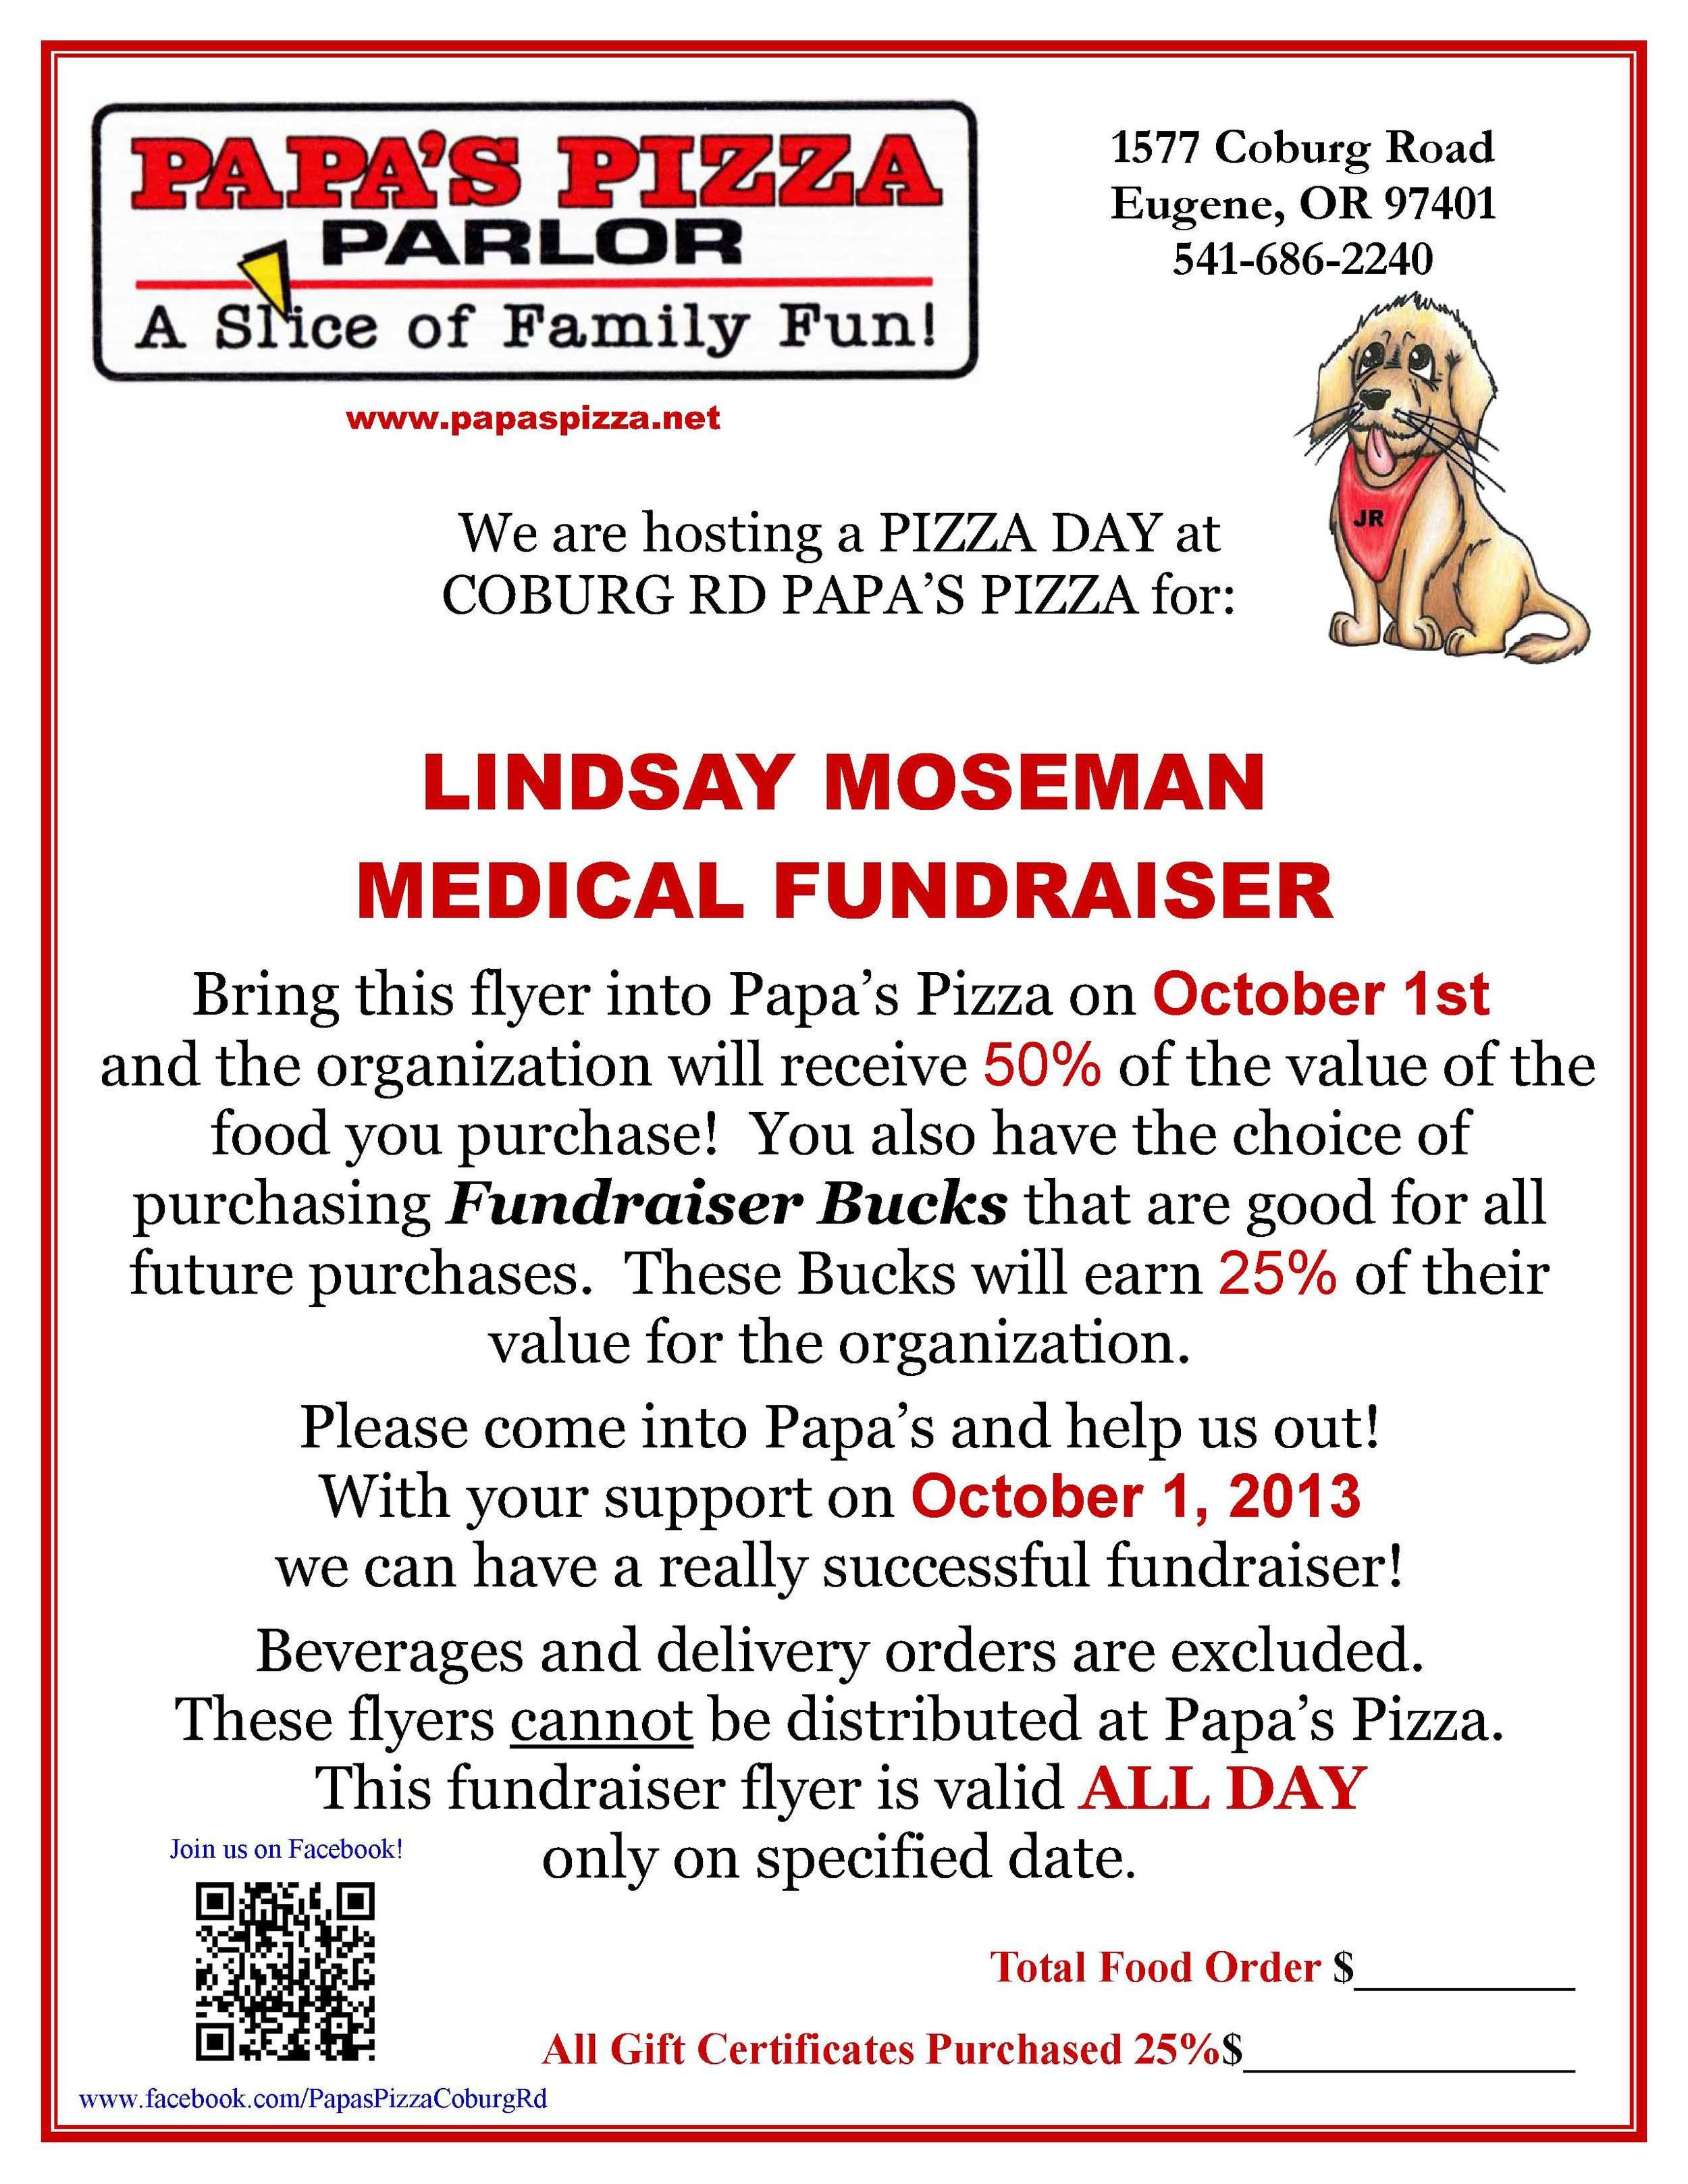 Print out this flyer and bring it with you to Papa's Pizza on October 1st.